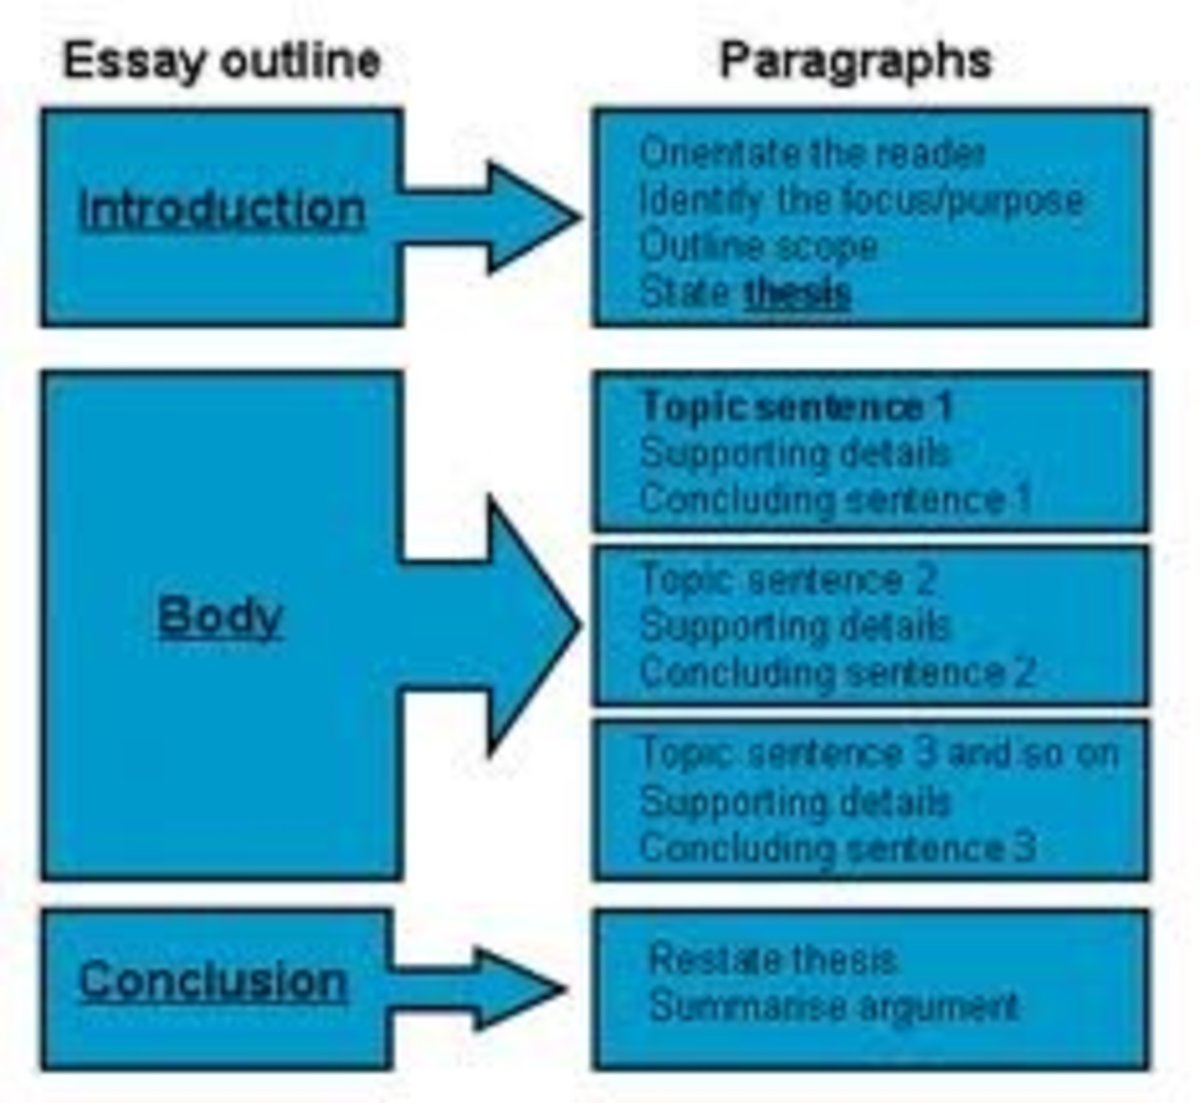 Villain Essay Selfreliance And The Oversoul Essays By Ralph Waldo Emerson English  Literature Essay Structure Advanced Essay Comparative Persuassive Essay Ideas also Student Success Essay Online Writing Lab  Essay Structure Development Relevant Essay Topics